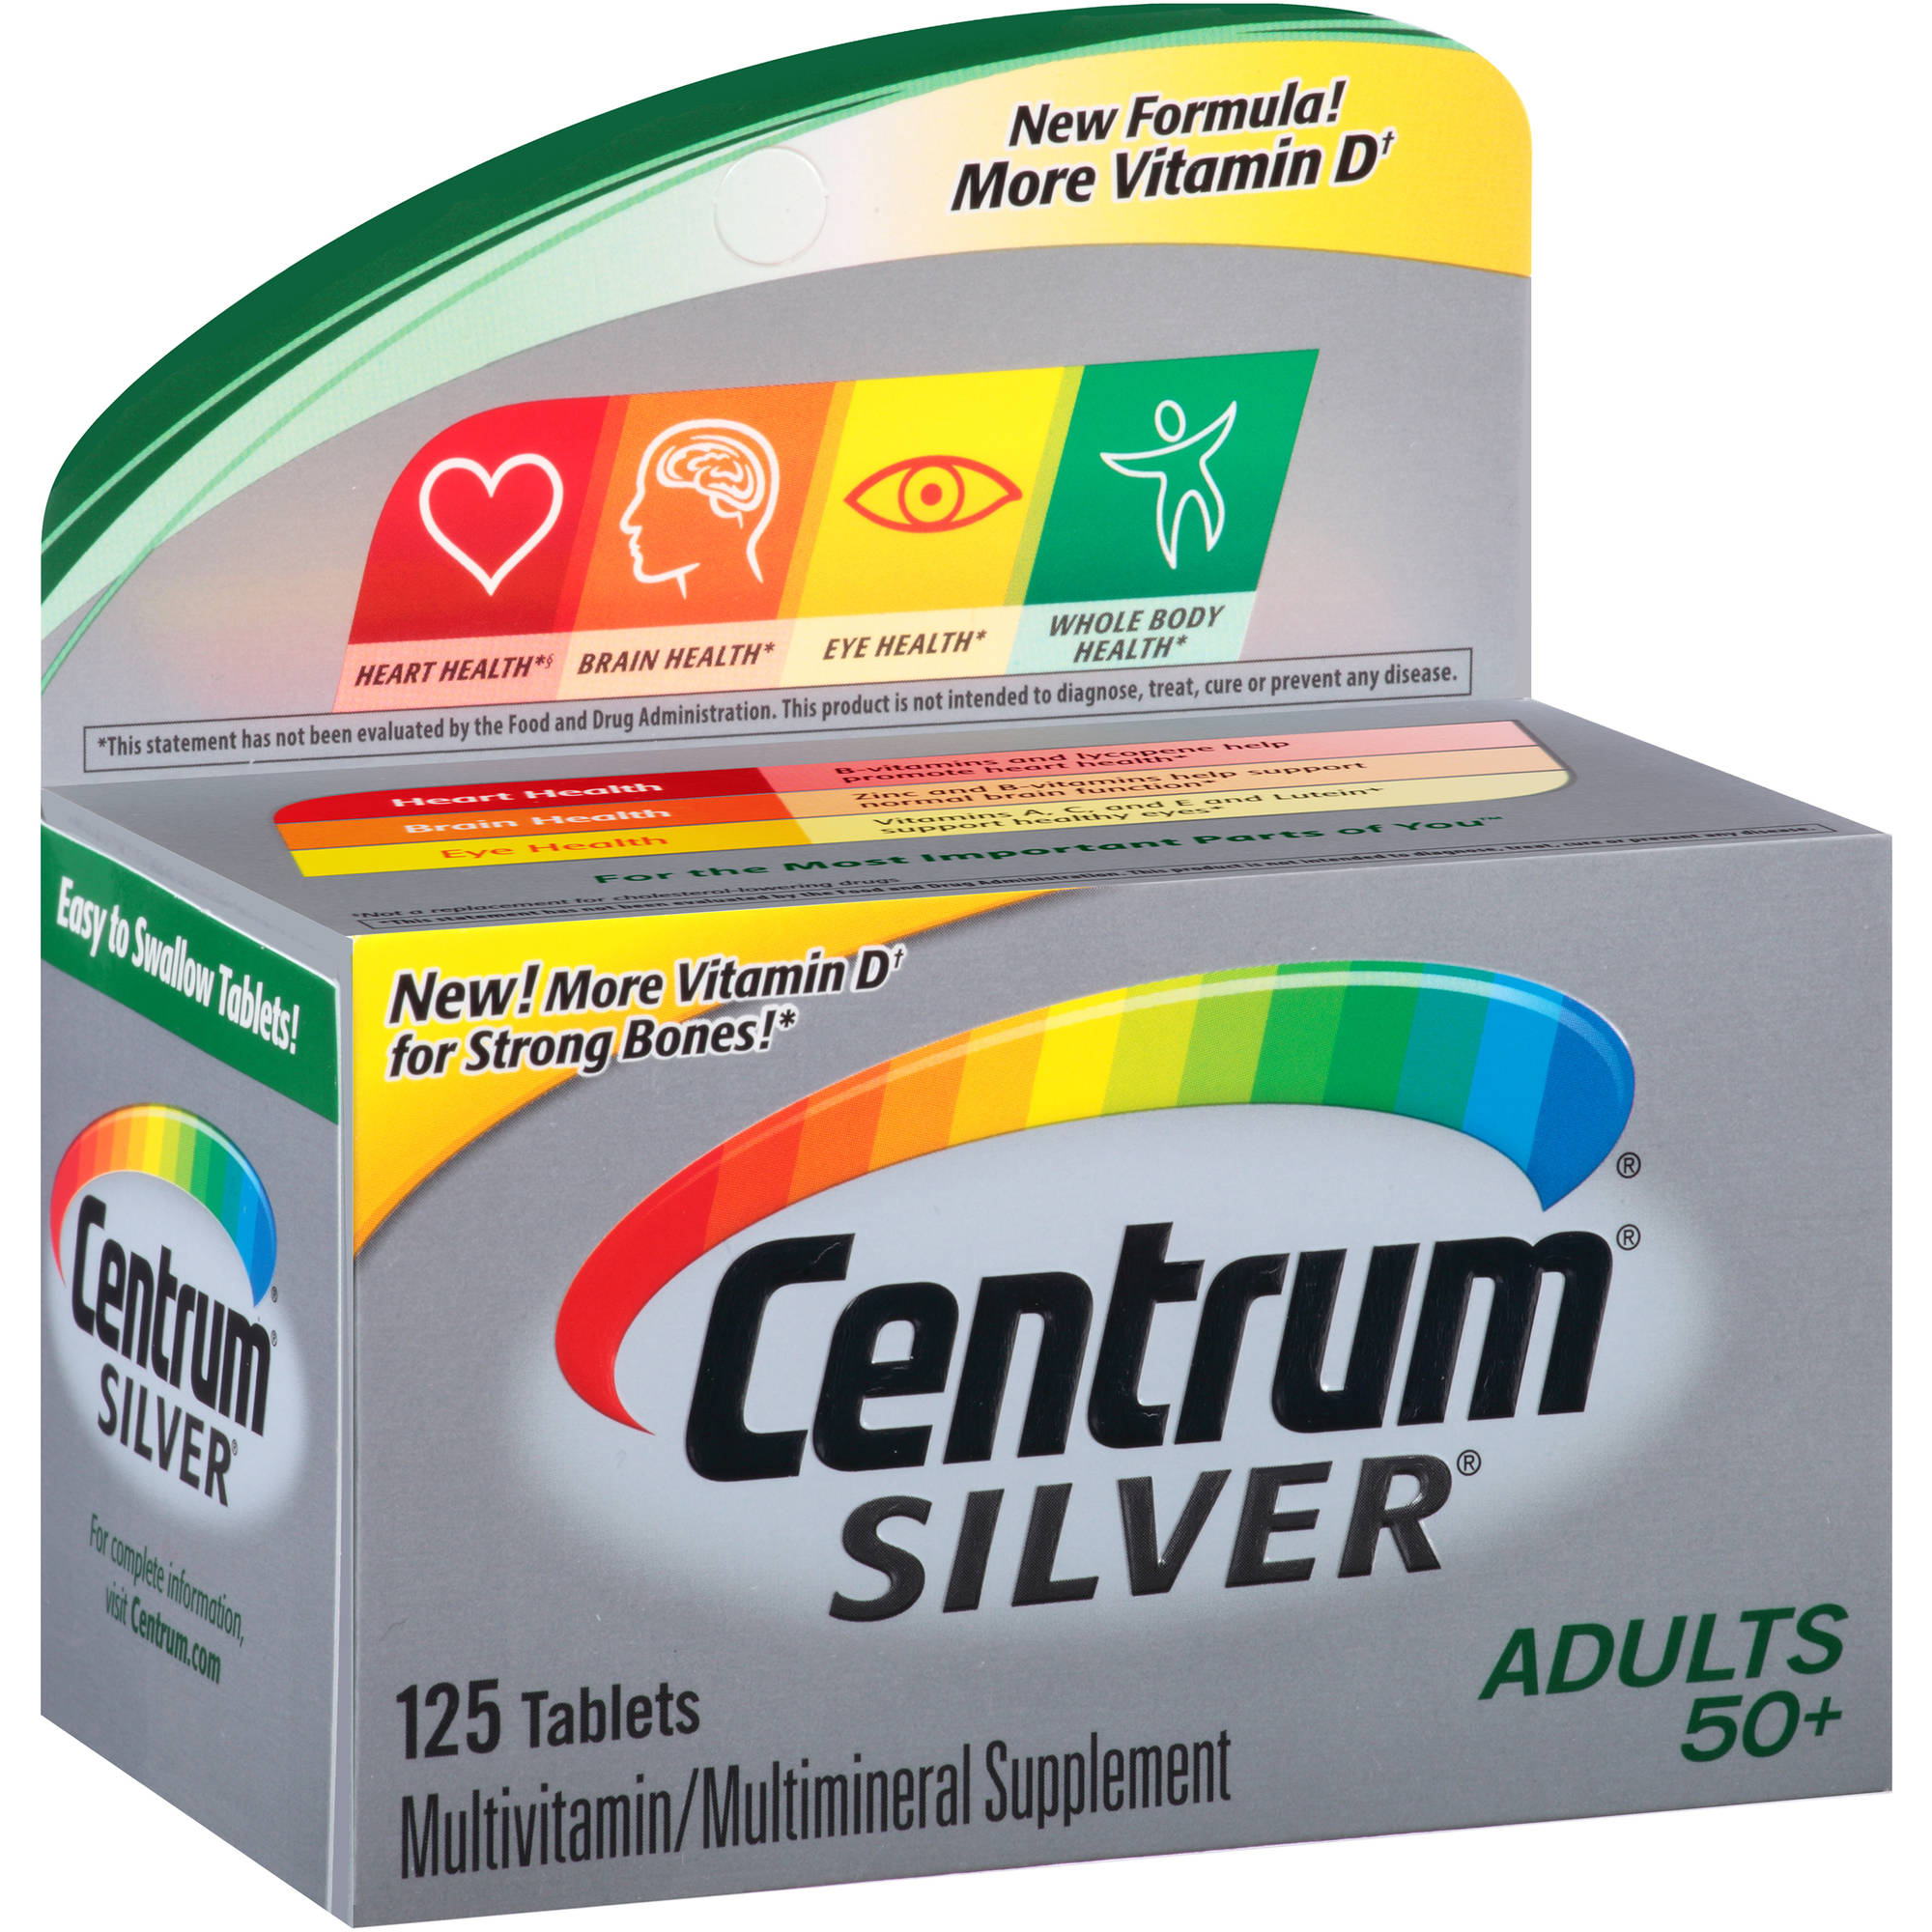 Centrum Silver Adult Multivitamin/Multimineral Supplement 125 Count